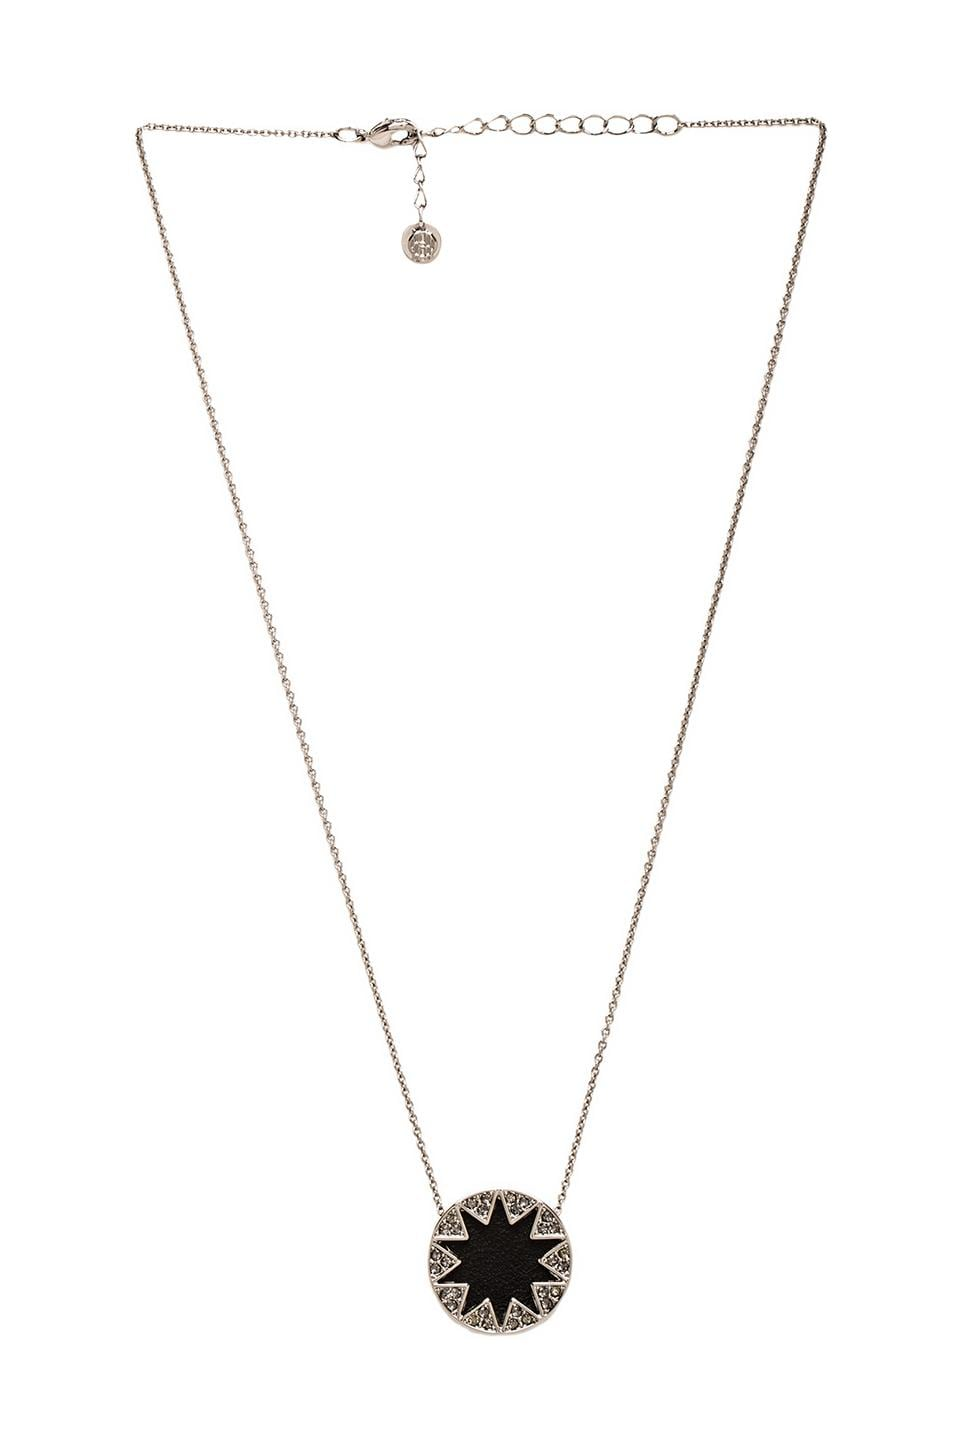 House of Harlow 1960 House of Harlow Mini Pave Sunburst Necklace in Gunmetal Tone Black